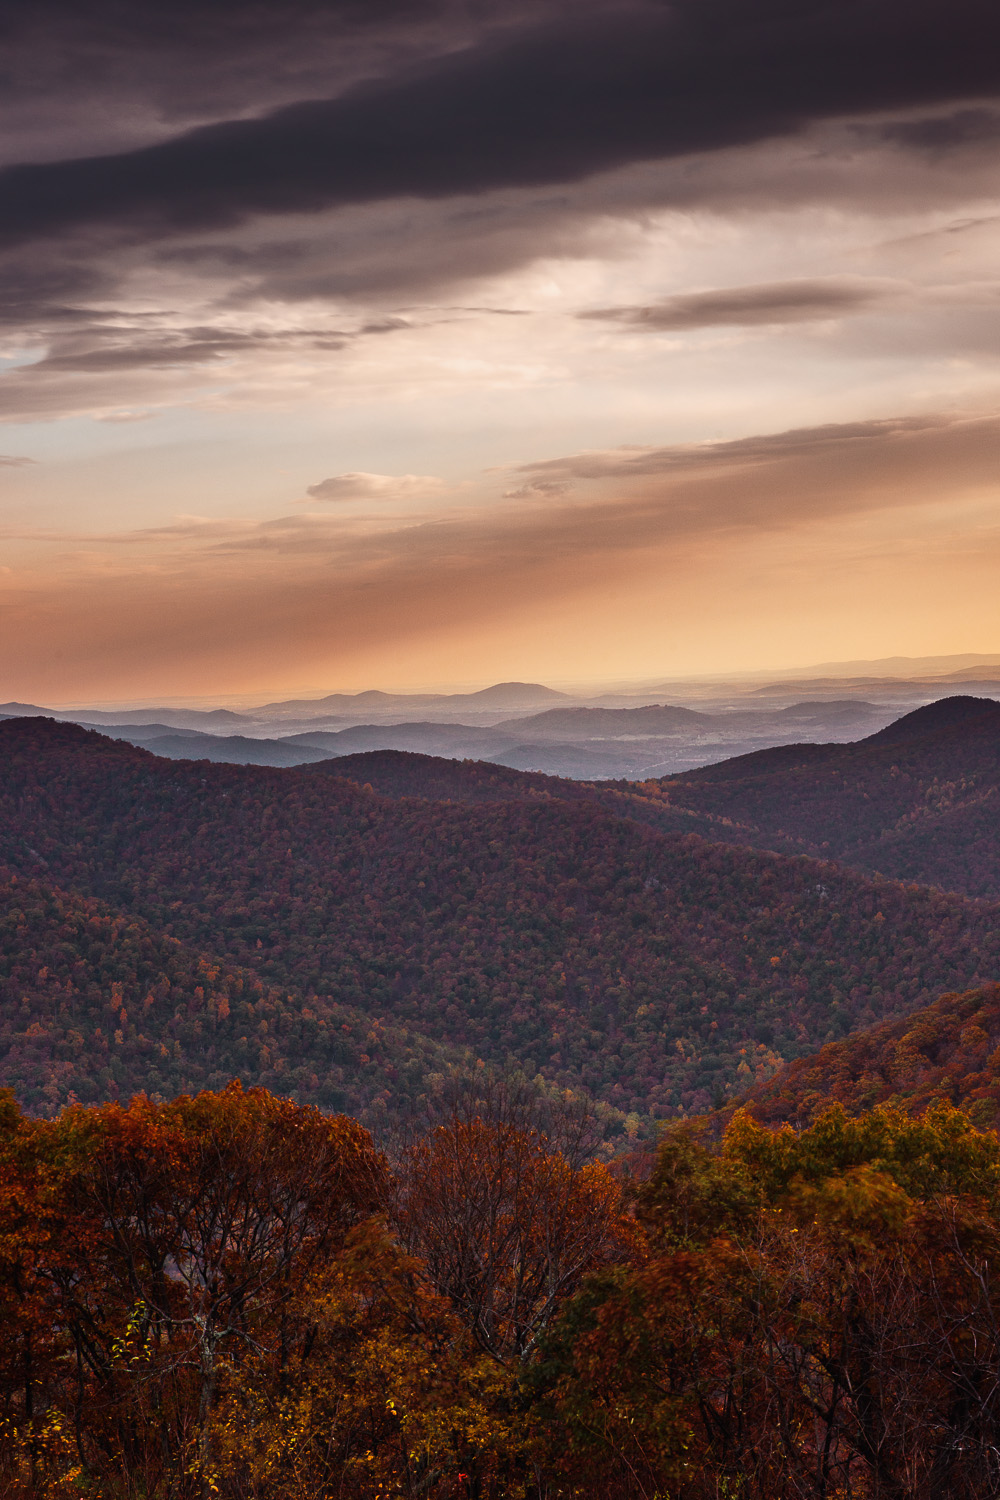 Rays of sun beam down on distant Shenandoah hills just past sunrise in Shenandoah National Park